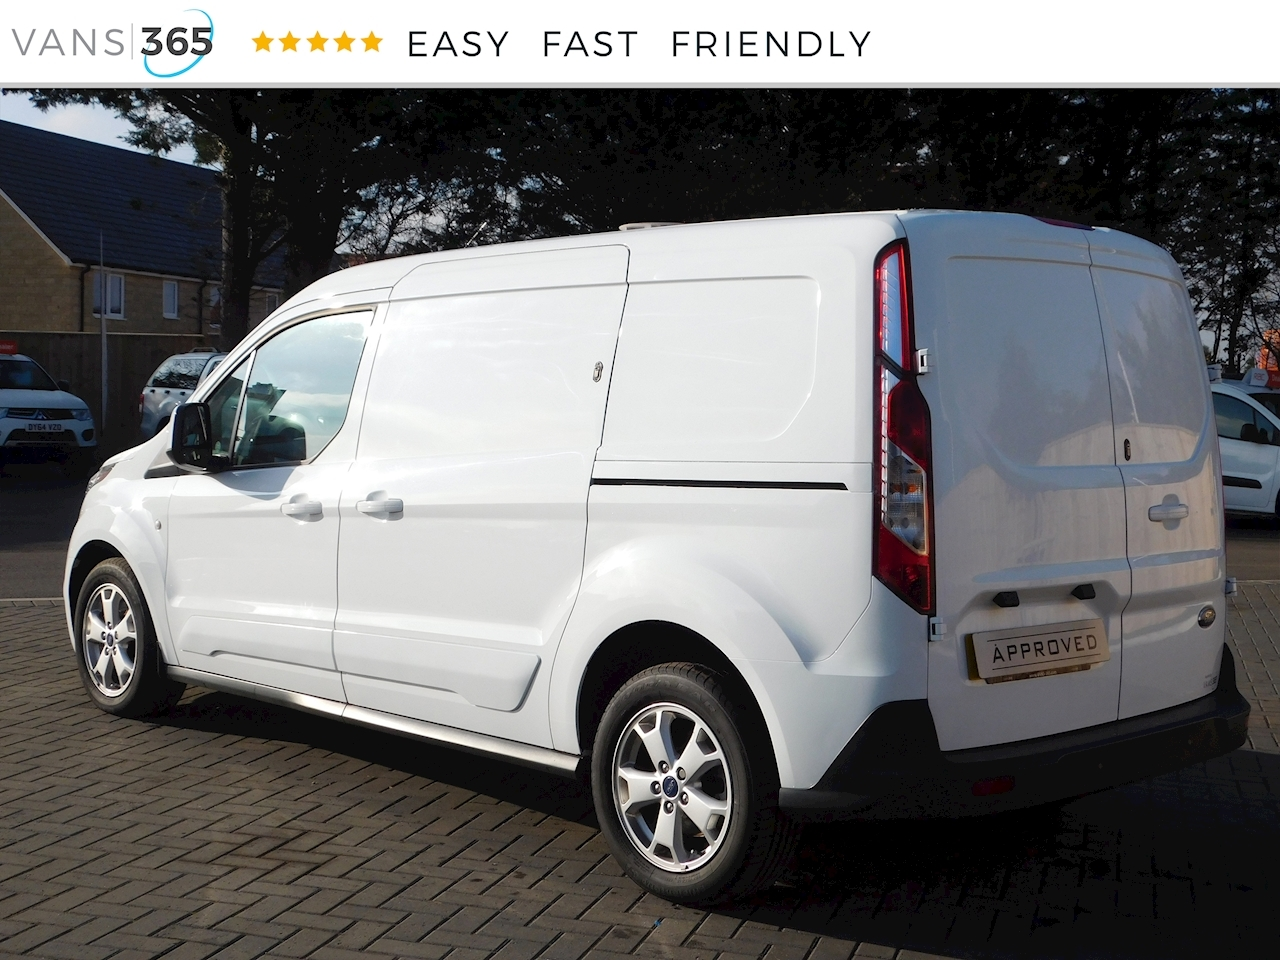 Used 2017 Ford Transit Connect 240 Limited P/V 1.5 5dr Small Van Manual  Diesel For Sale in Bristol | Vans 365